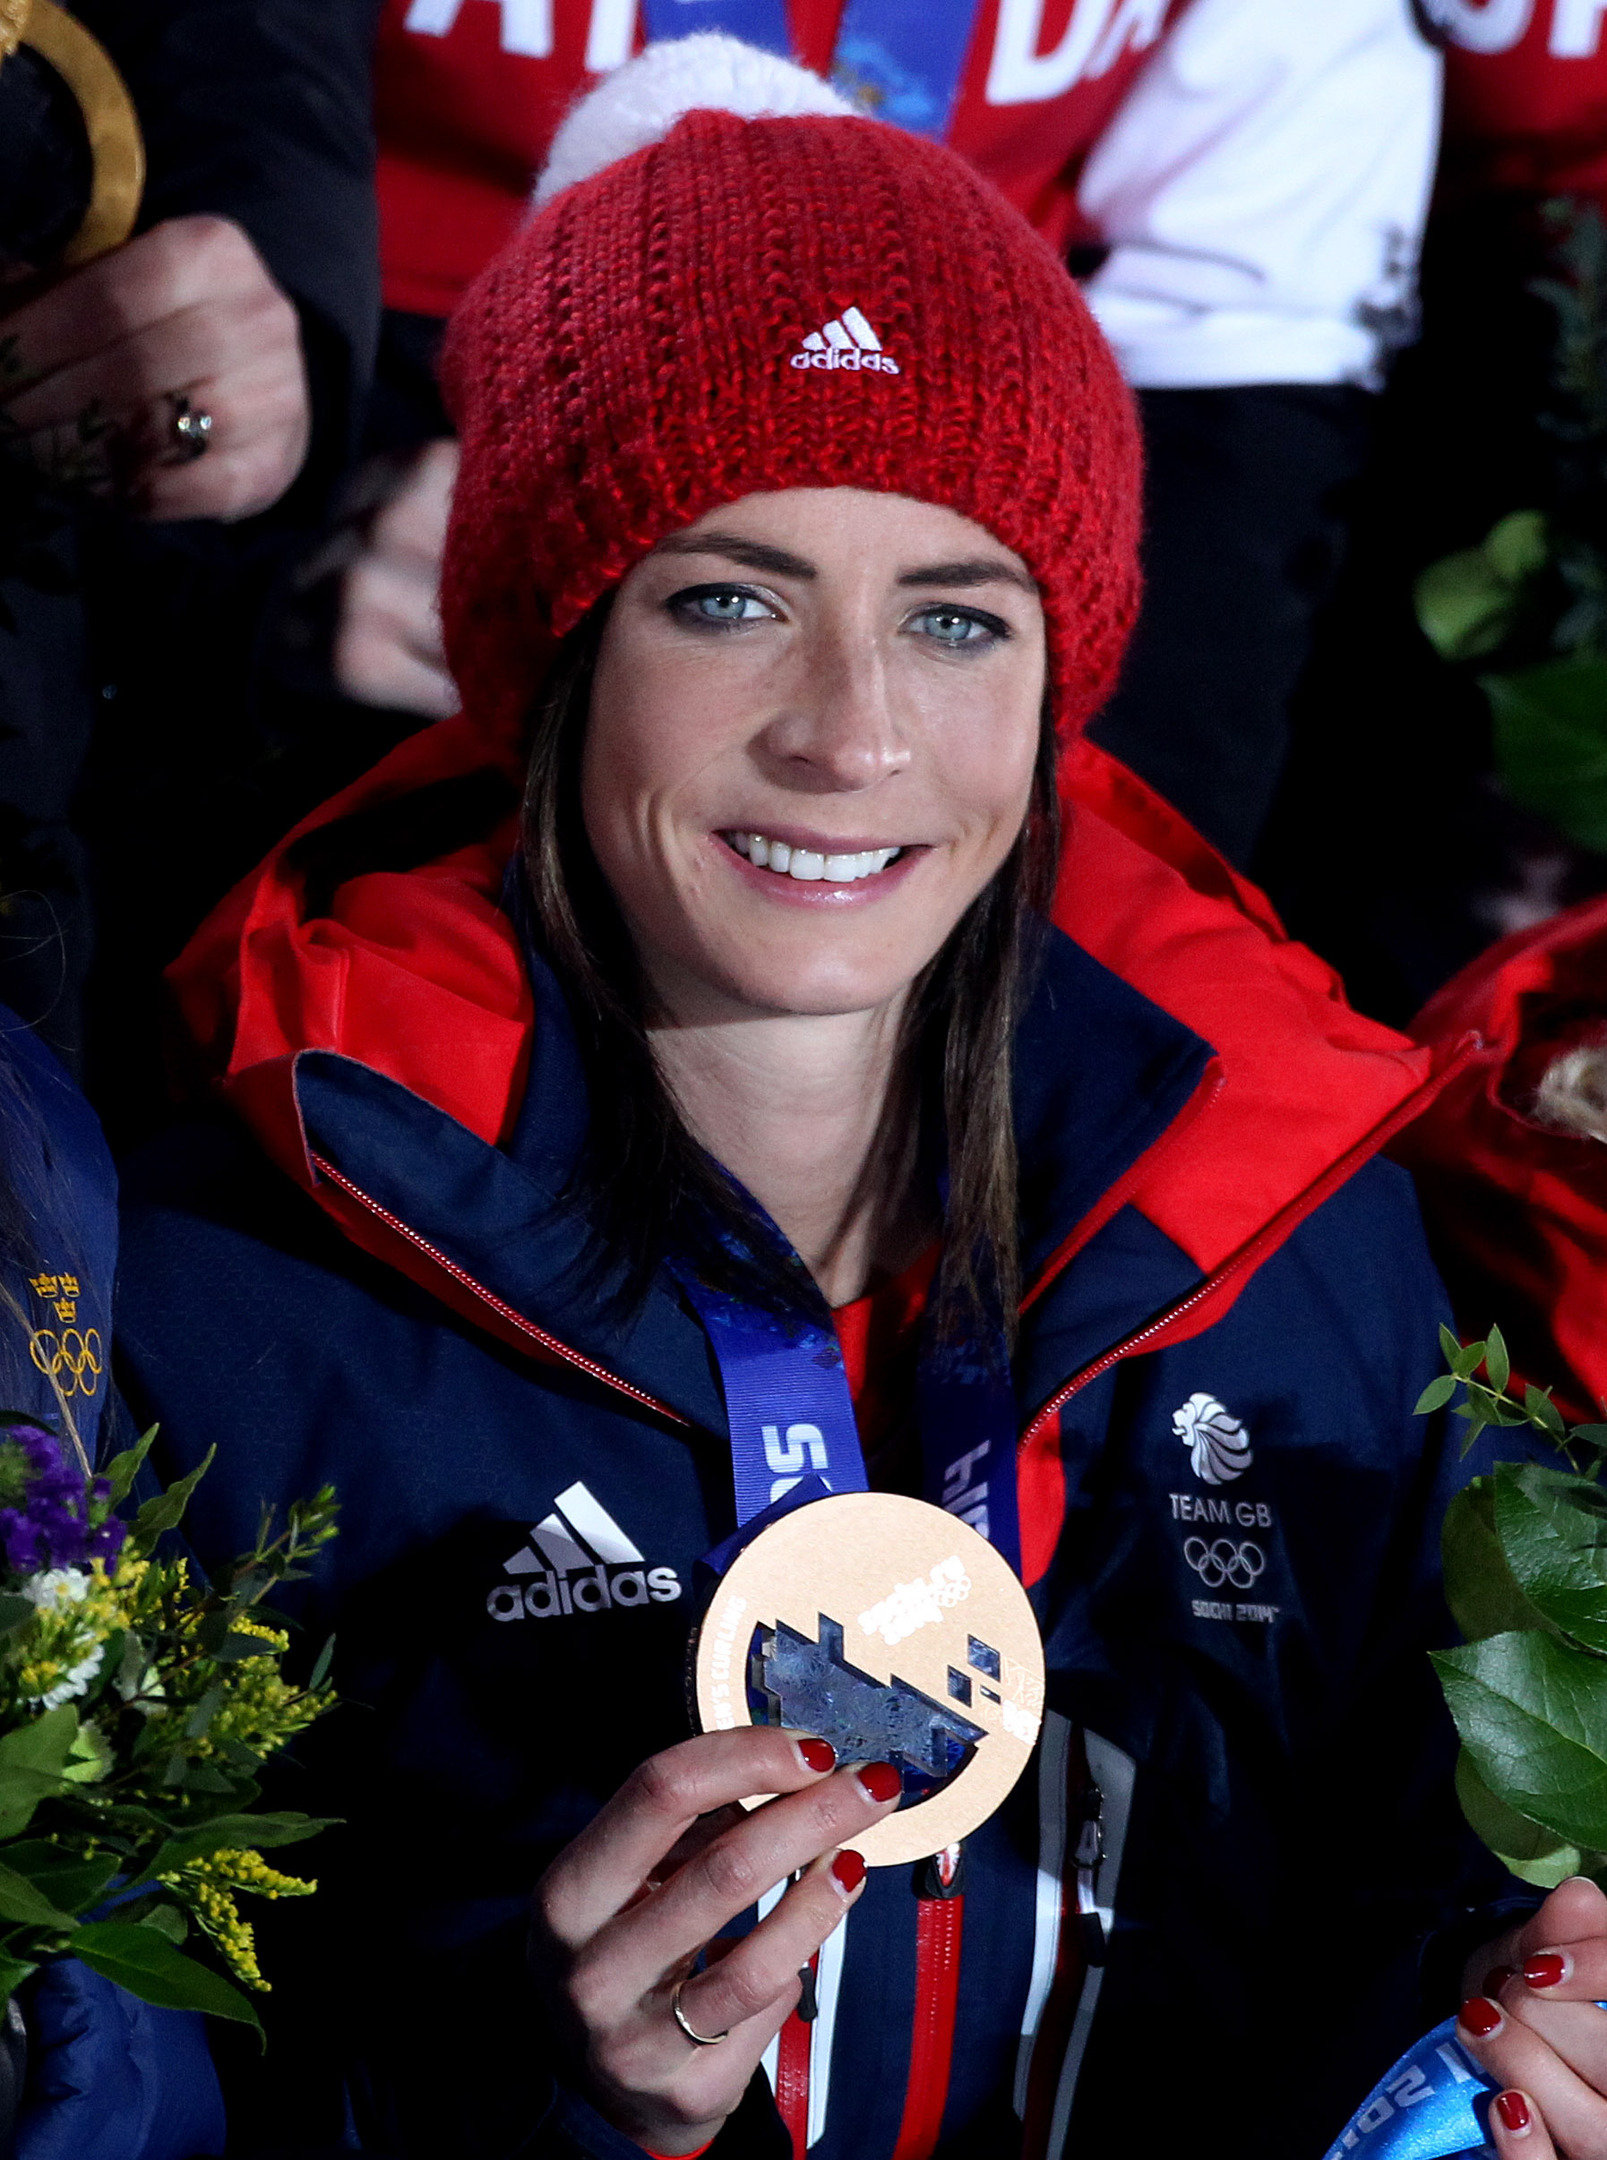 Eve her Olympic bronze medal that has led to her honorary degree.